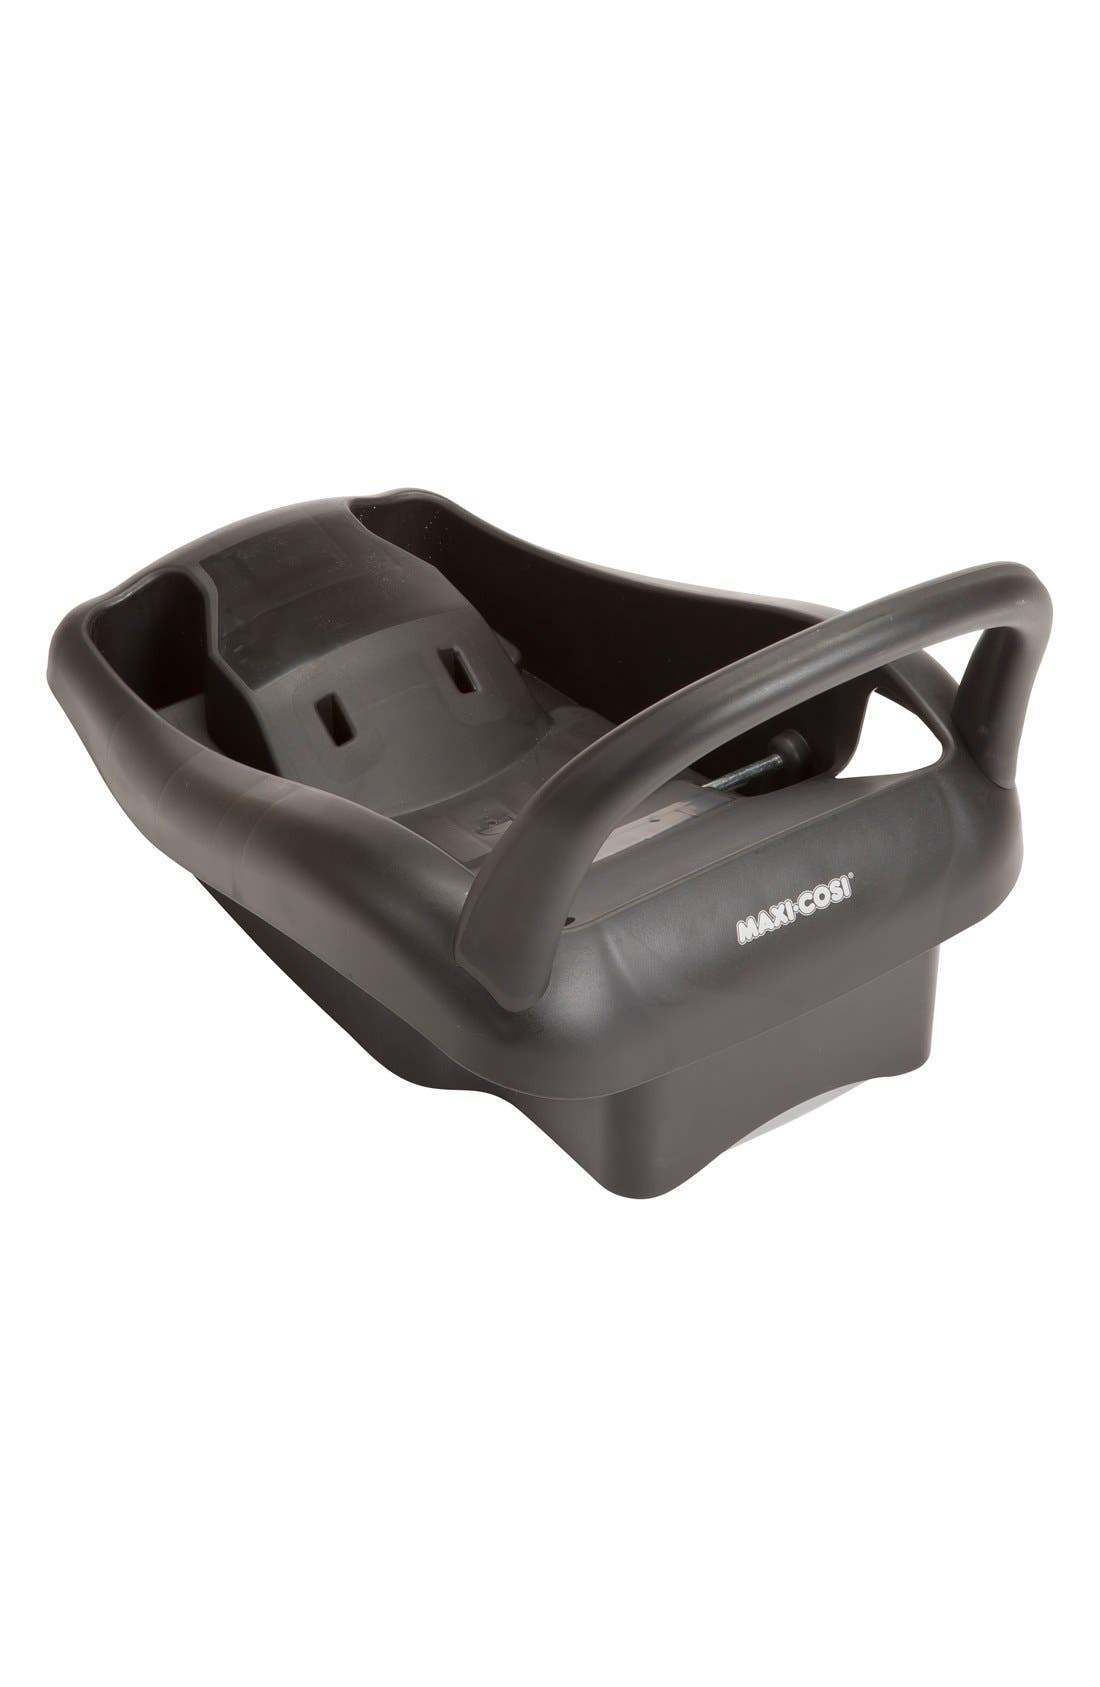 MAXI-COSI® 'Mico Max 30' Infant Car Seat Base